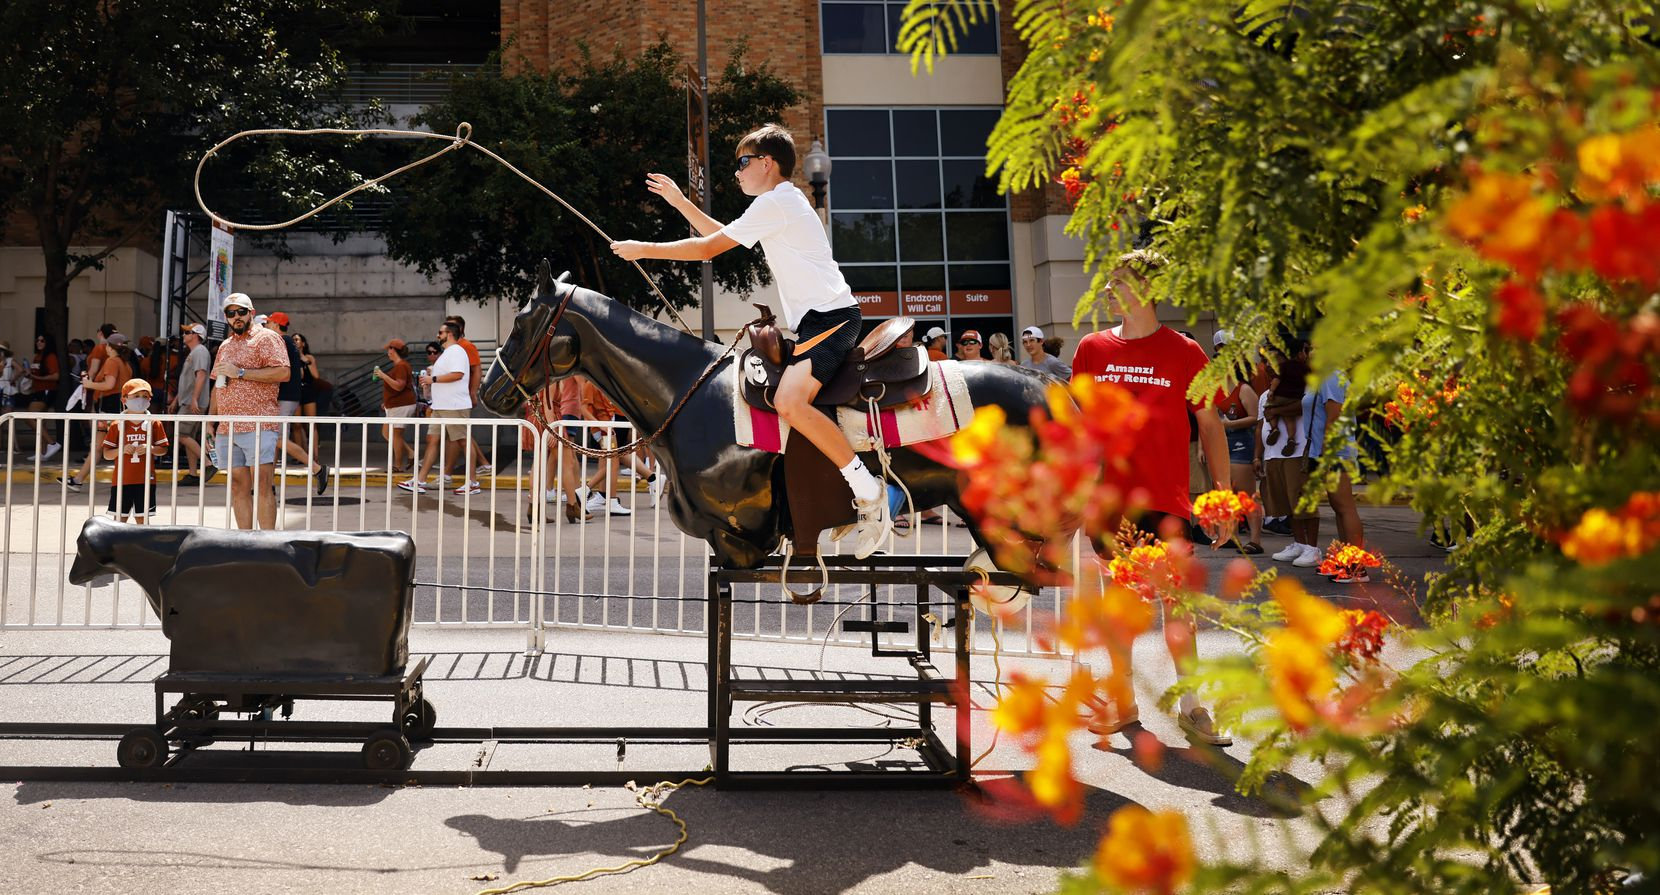 Gavin Thornfield of Dallas tries to lasso a mechanical calf on Smokey's Midway, a mini 'state fair' outside of DKR-Texas Memorial Stadium in Austin, Saturday, September 4, 2021. The Longhorns were facing the Louisiana-Lafayette Ragin Cajuns. (Tom Fox/The Dallas Morning News)